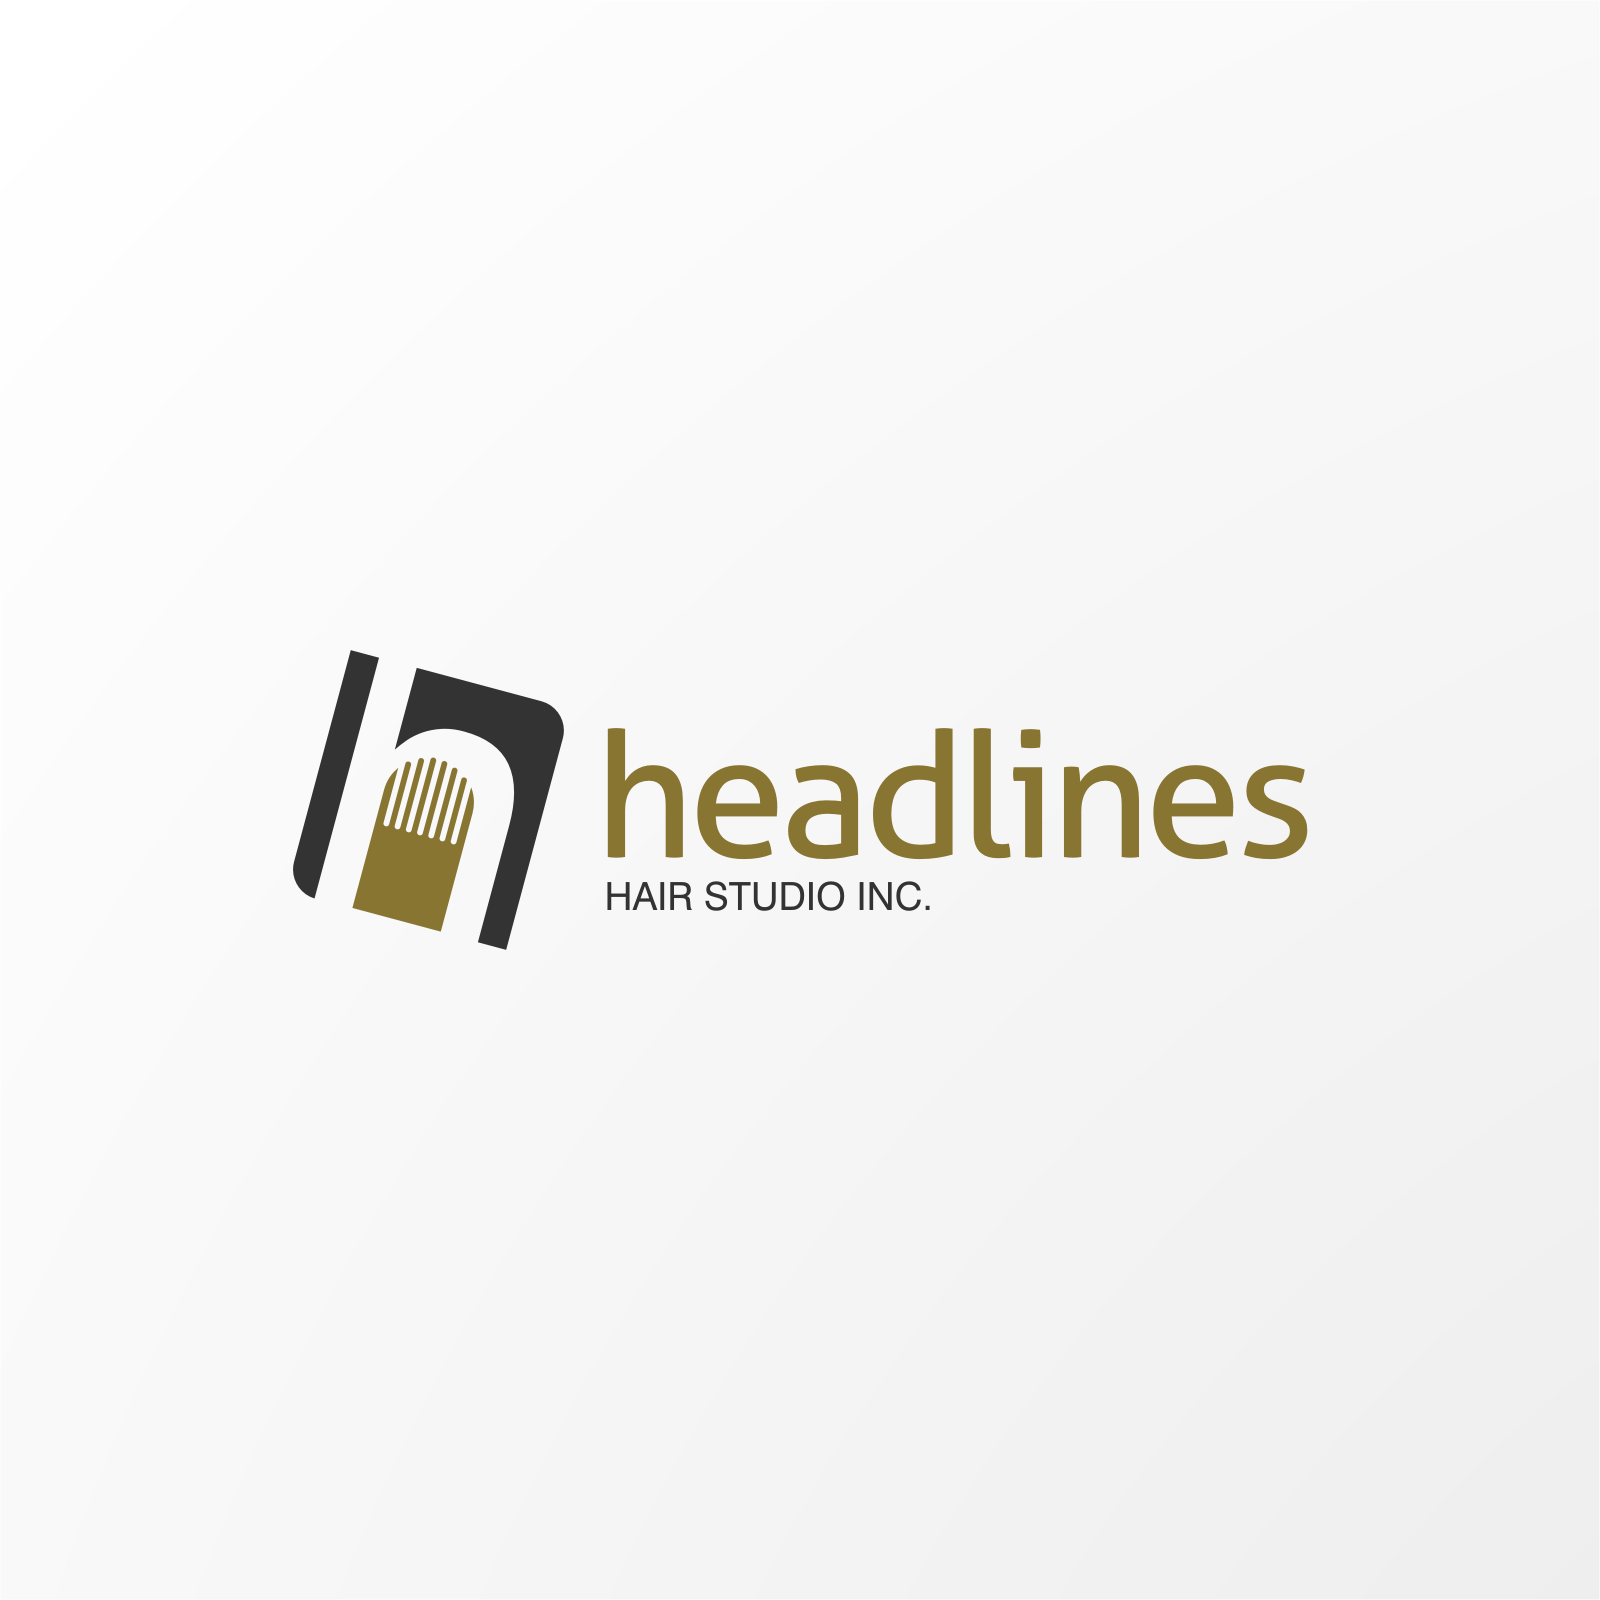 Logo Design by Hermeneutic - Entry No. 1 in the Logo Design Contest Fun Logo Design for HEADLINES HAIR STUDIO INC.